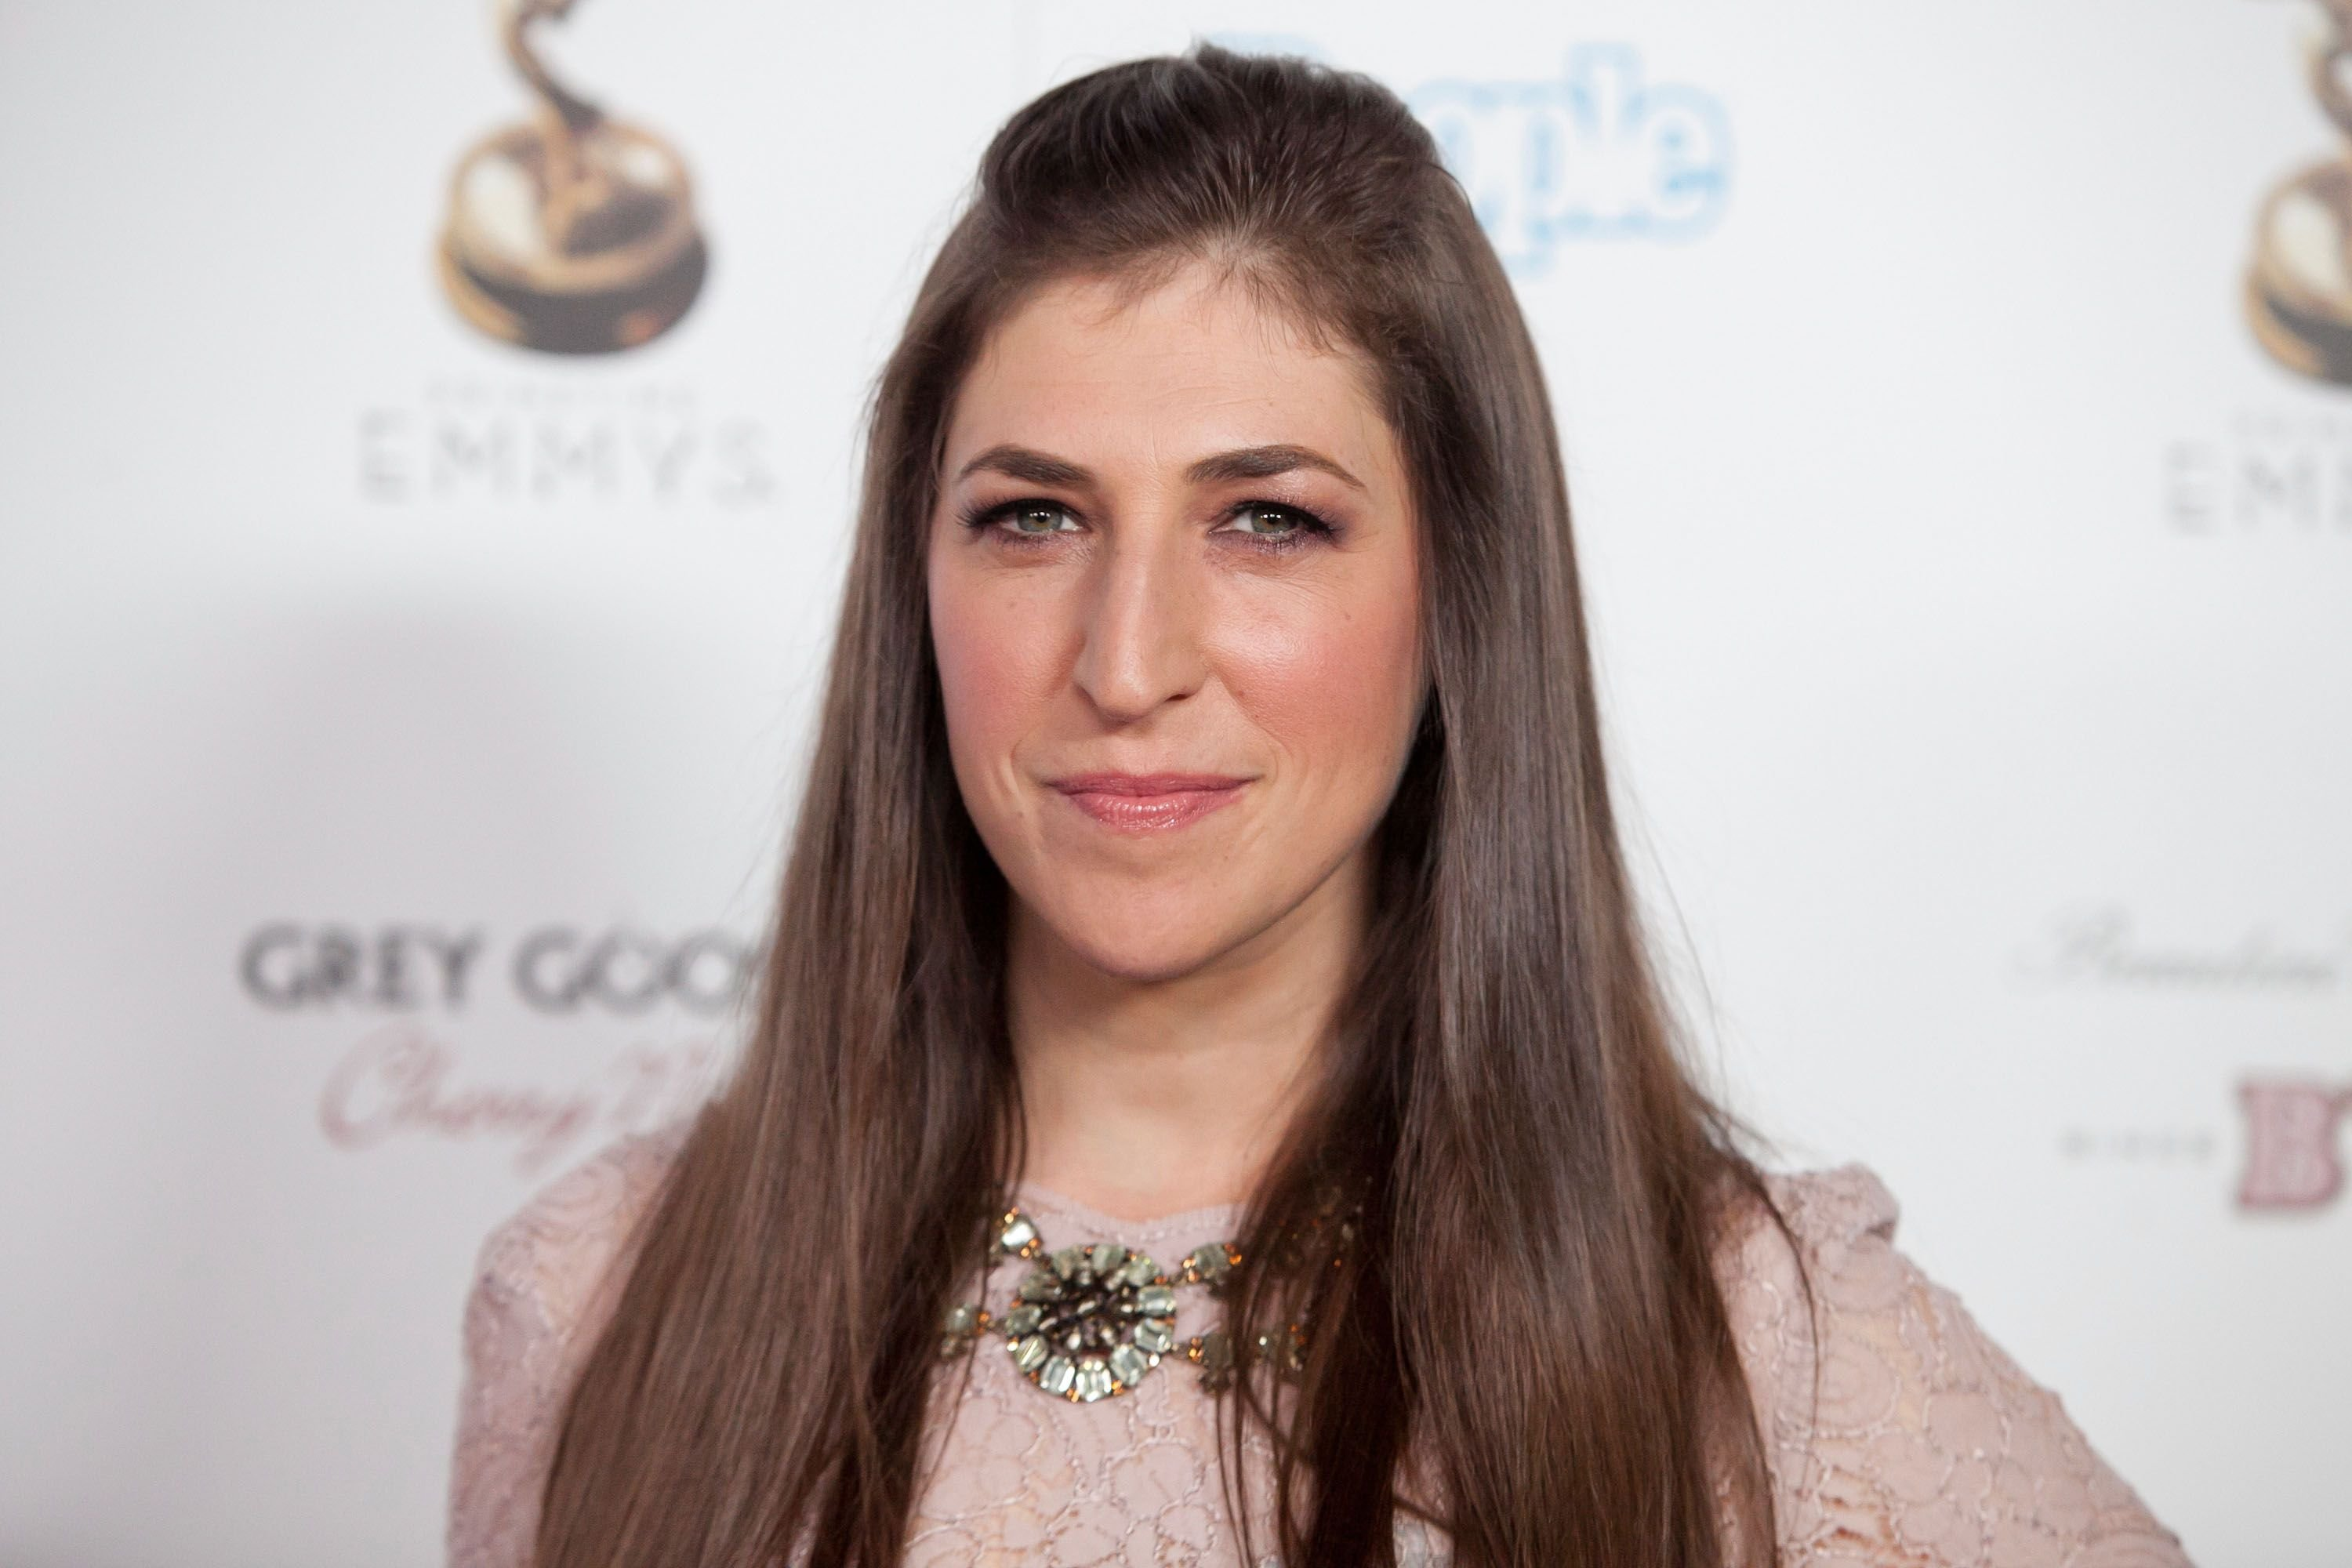 Mayim Bialik at The Academy of Television Arts & Sciences Performer Nominees' 64th Primetime Emmy Awards Reception on September 21, 2012, in West Hollywood, California | Photo: Imeh Akpanudosen/Getty Images